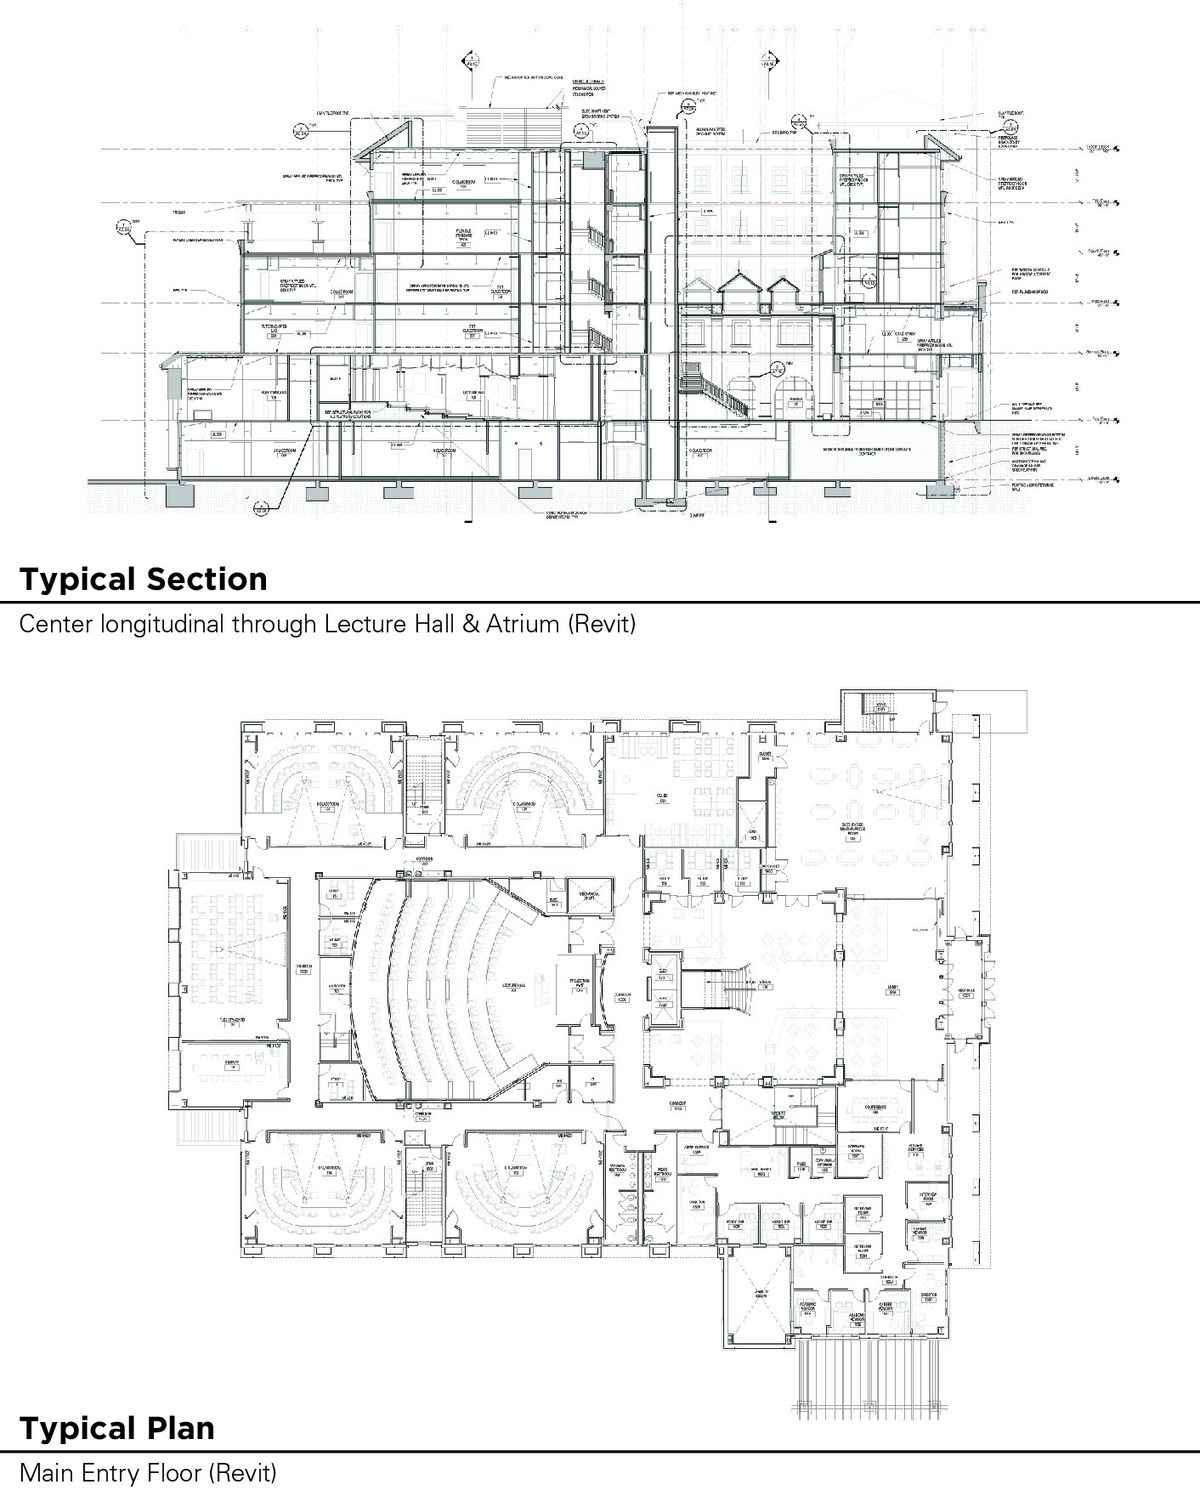 Typical Section & Plan